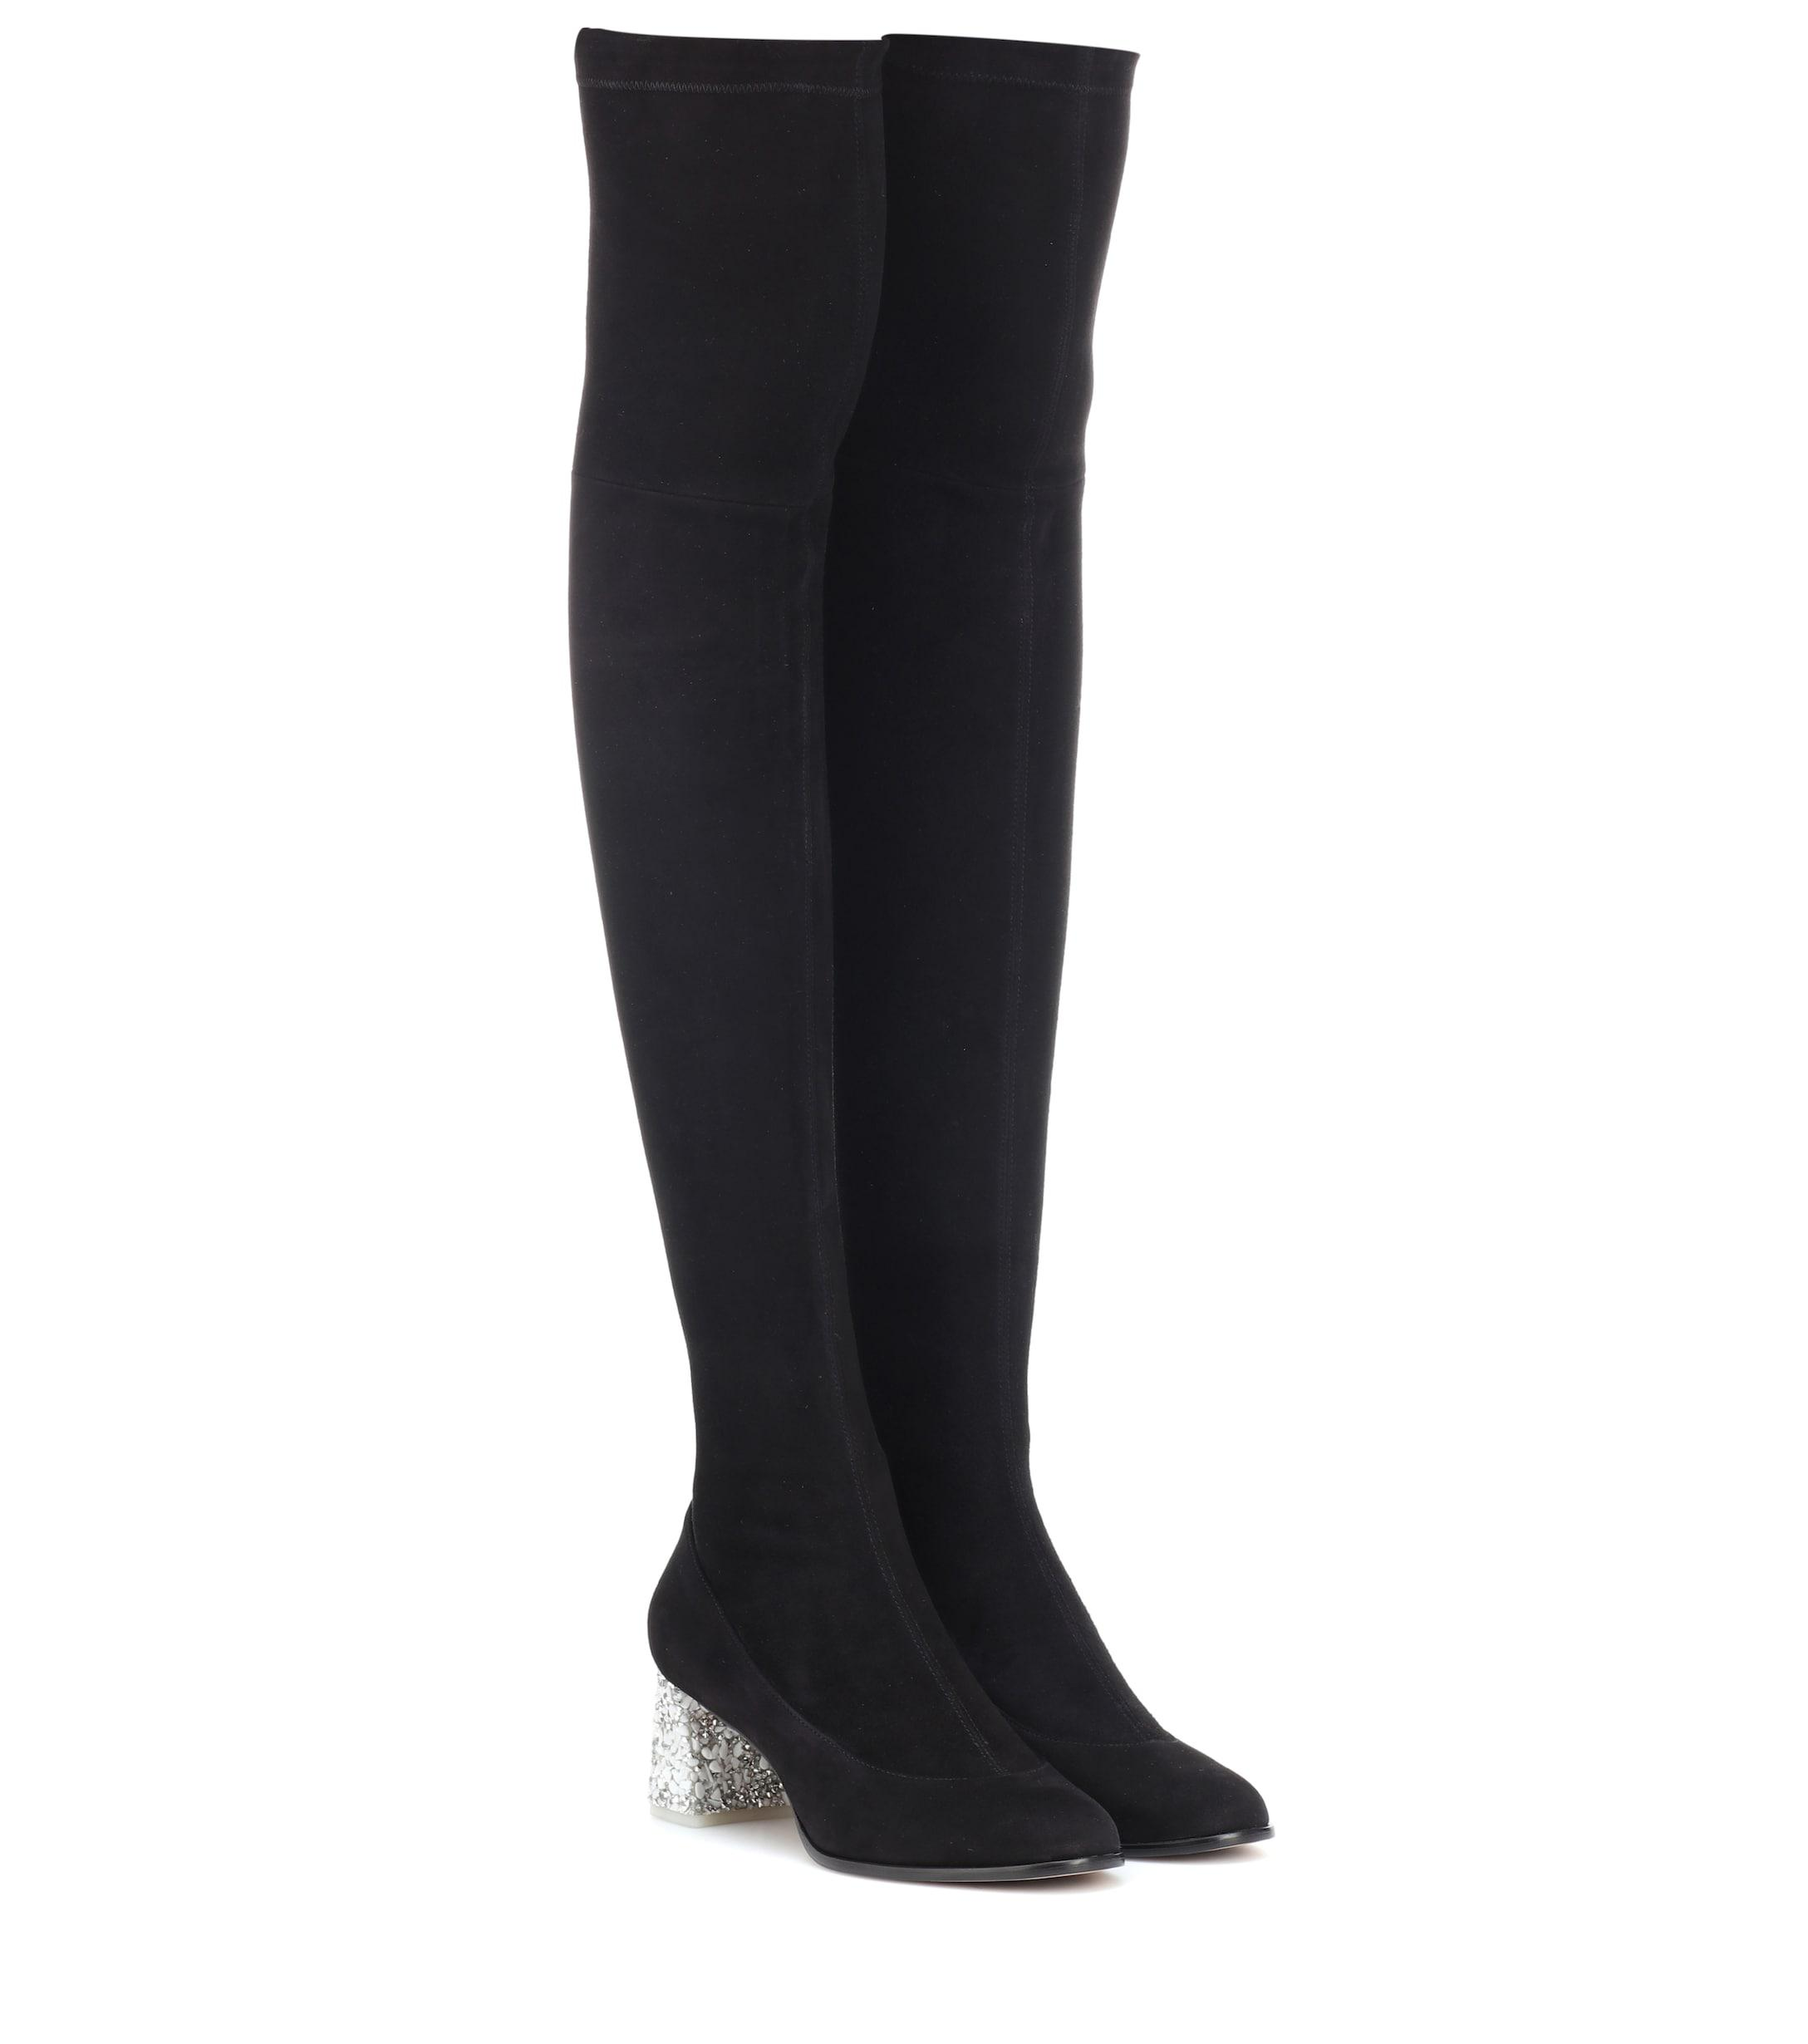 4c81f68dbd7 Lyst - Sophia Webster Suranne Suede Over-the-knee Boots in Black